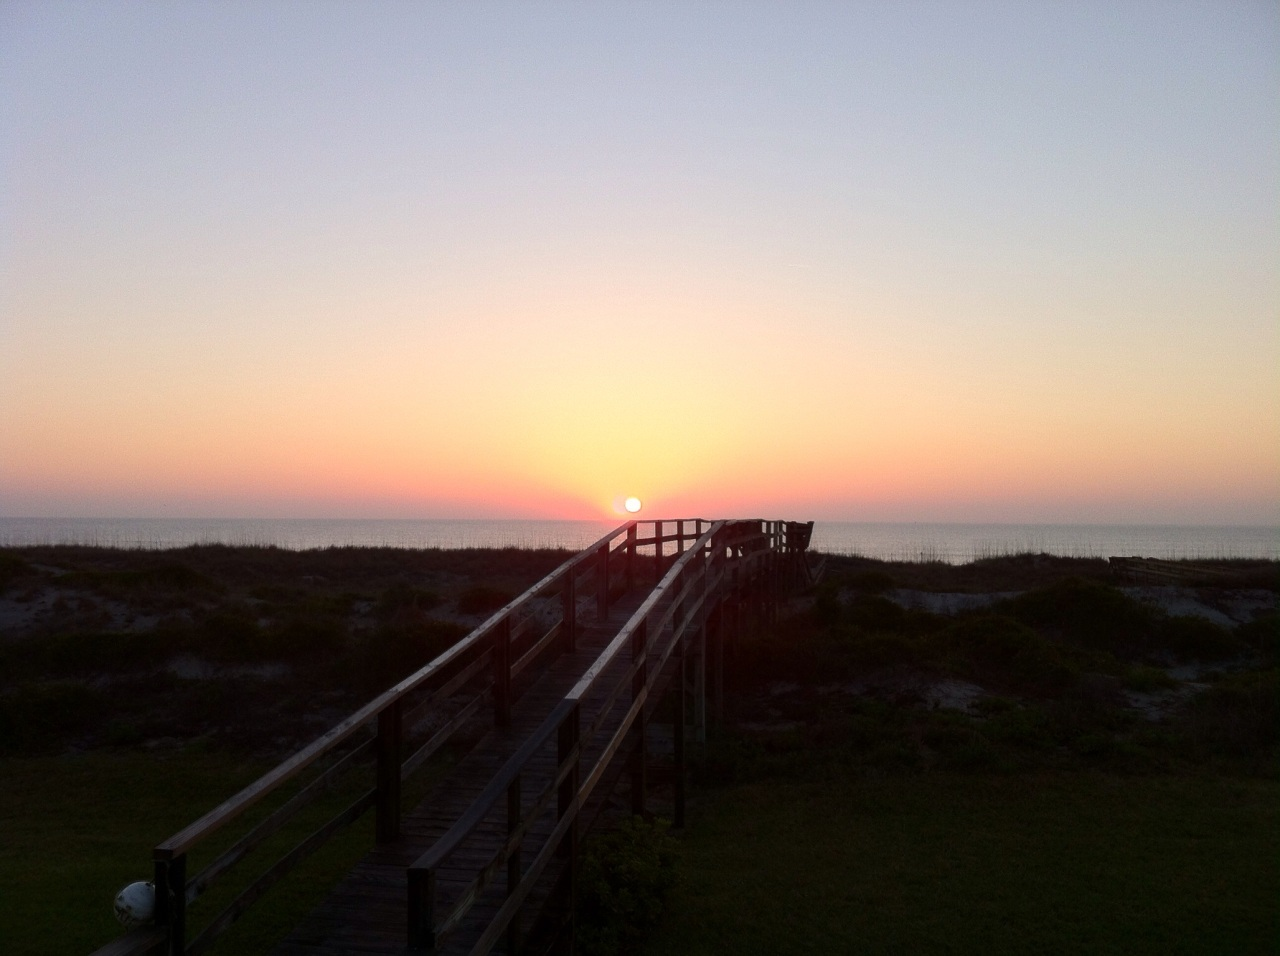 Sunrise yesterday over the Atlantic. Viewed from our Amelia Island holiday rental. [Photo by me, 2015.]